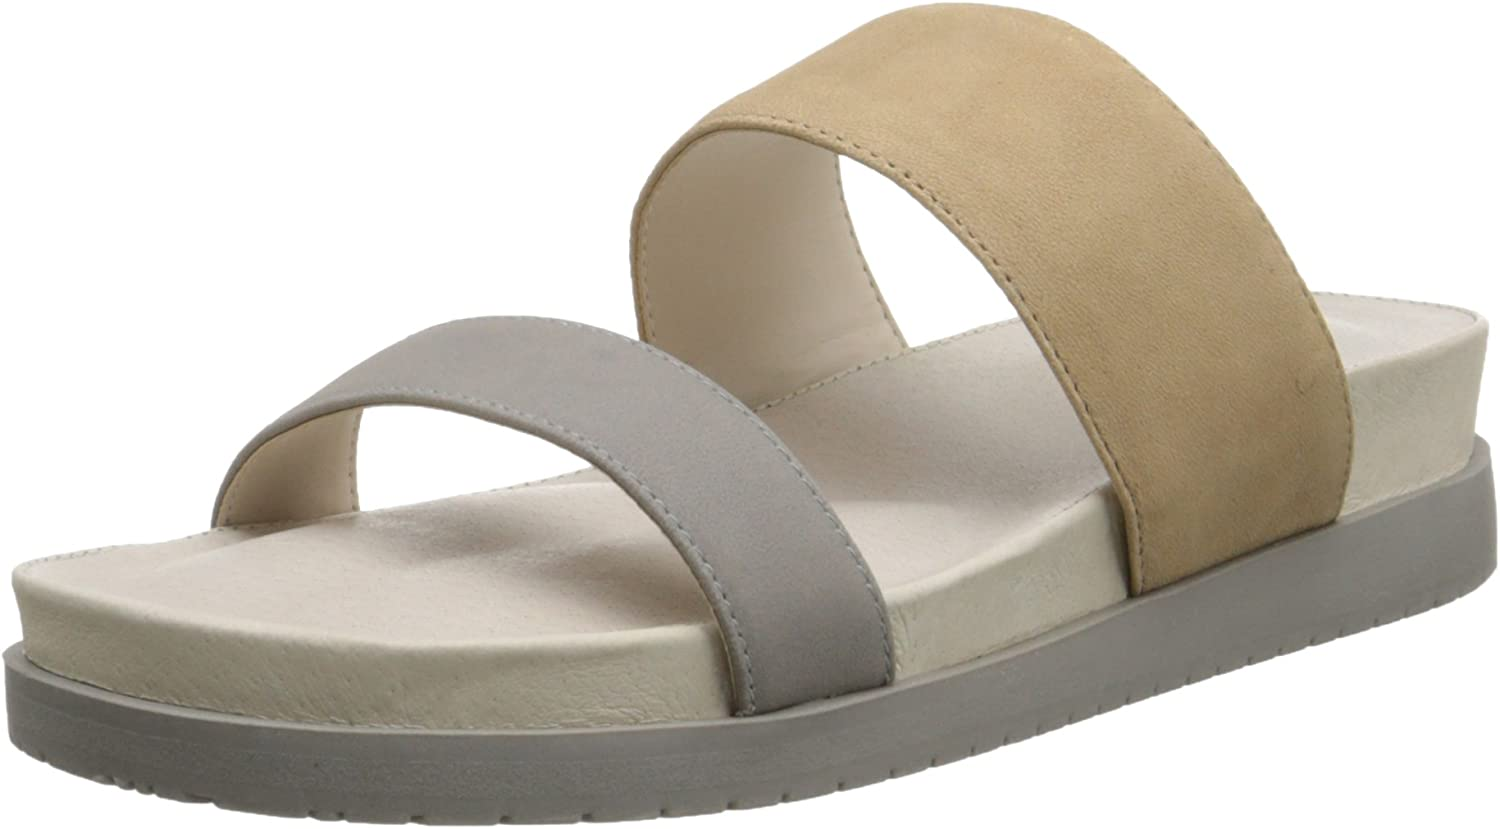 Kenneth Cole New York Women's Jullian Platform Sandal